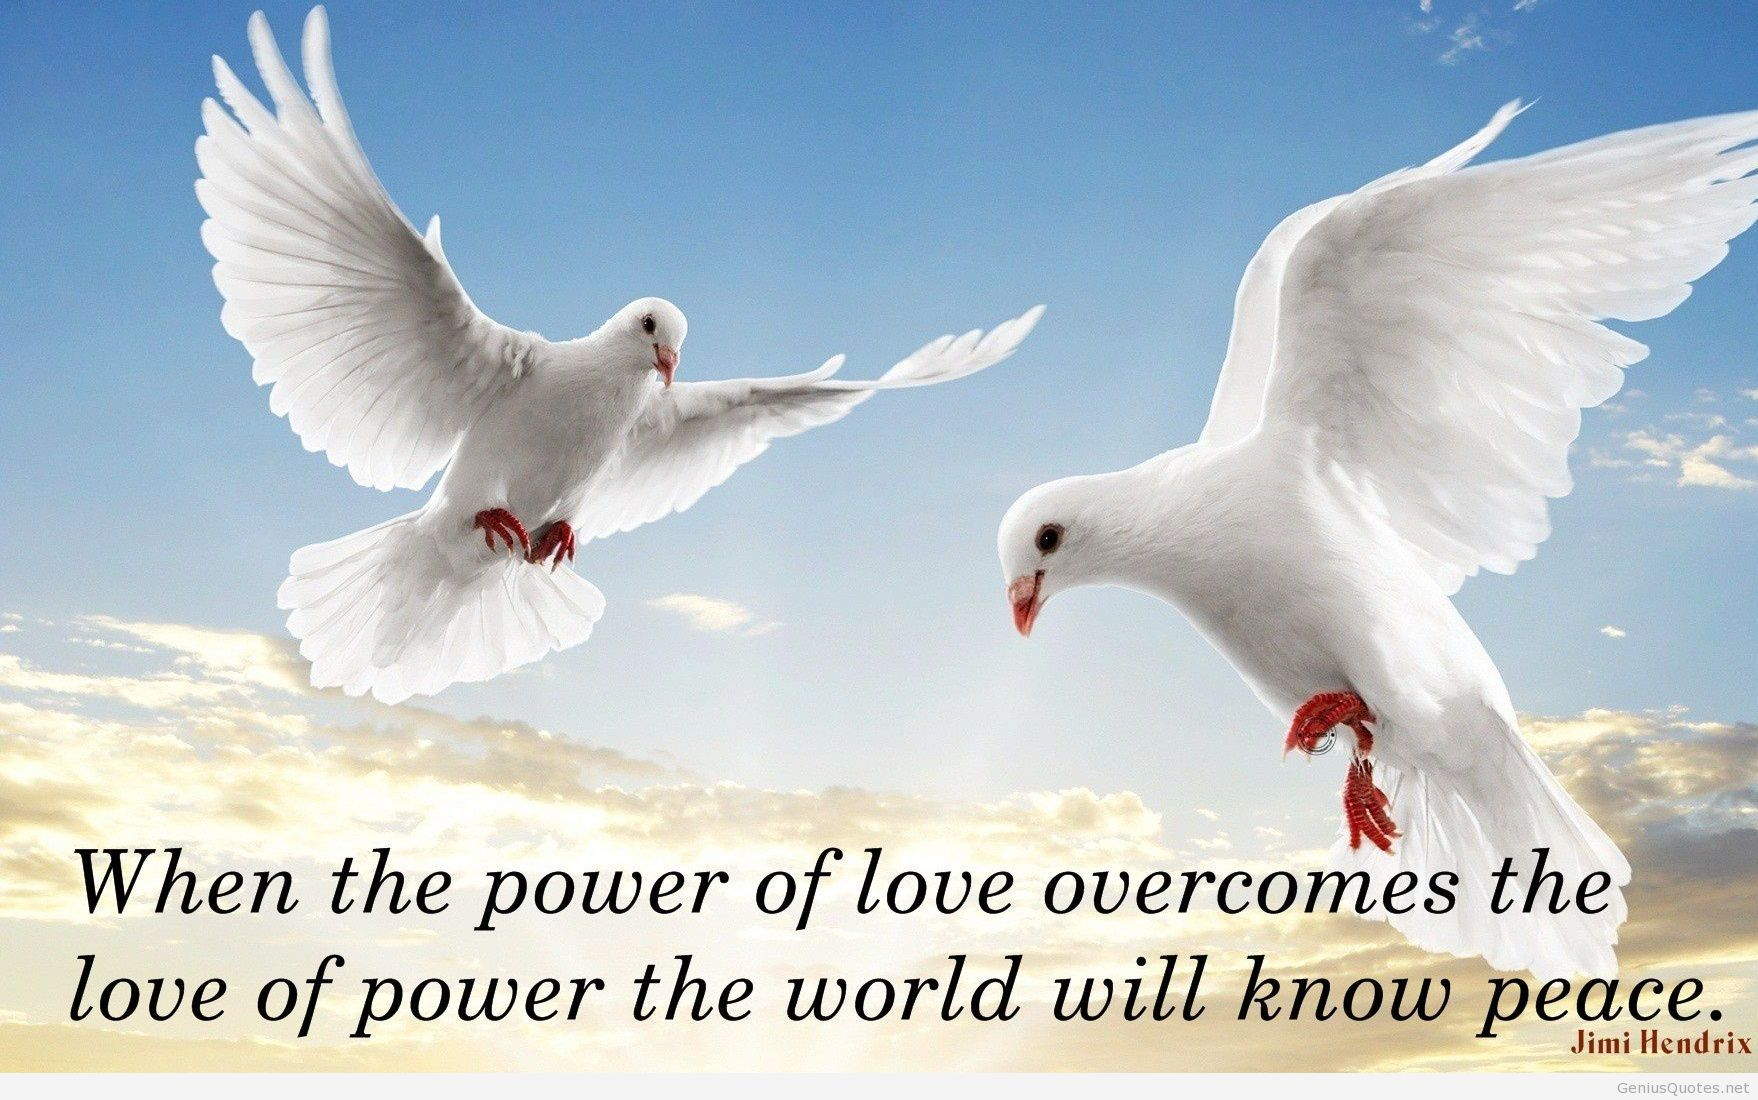 Quotes About Peace And Love Amazing Peace Is The Highest Form Disclpine Quote .of Power The World